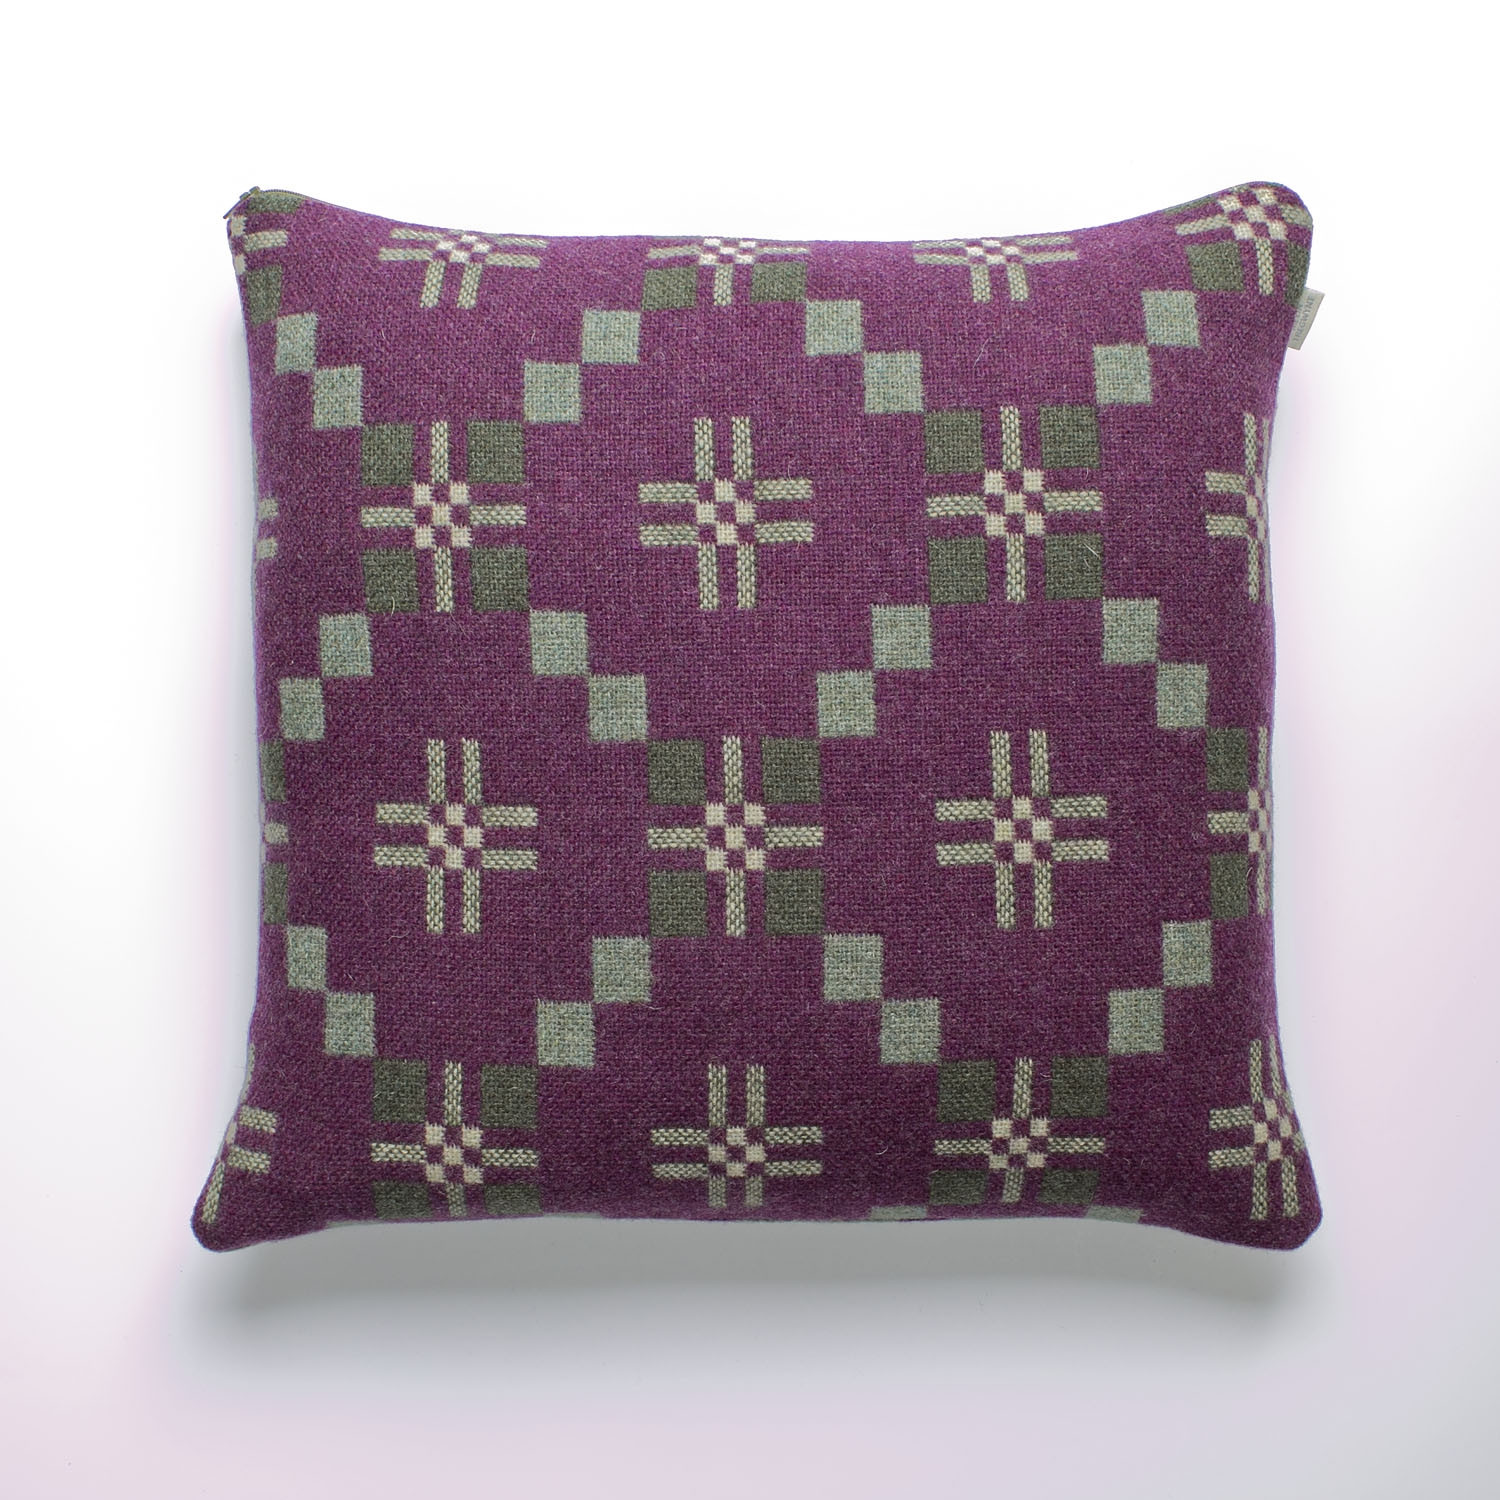 St Davids cross sloe cushion